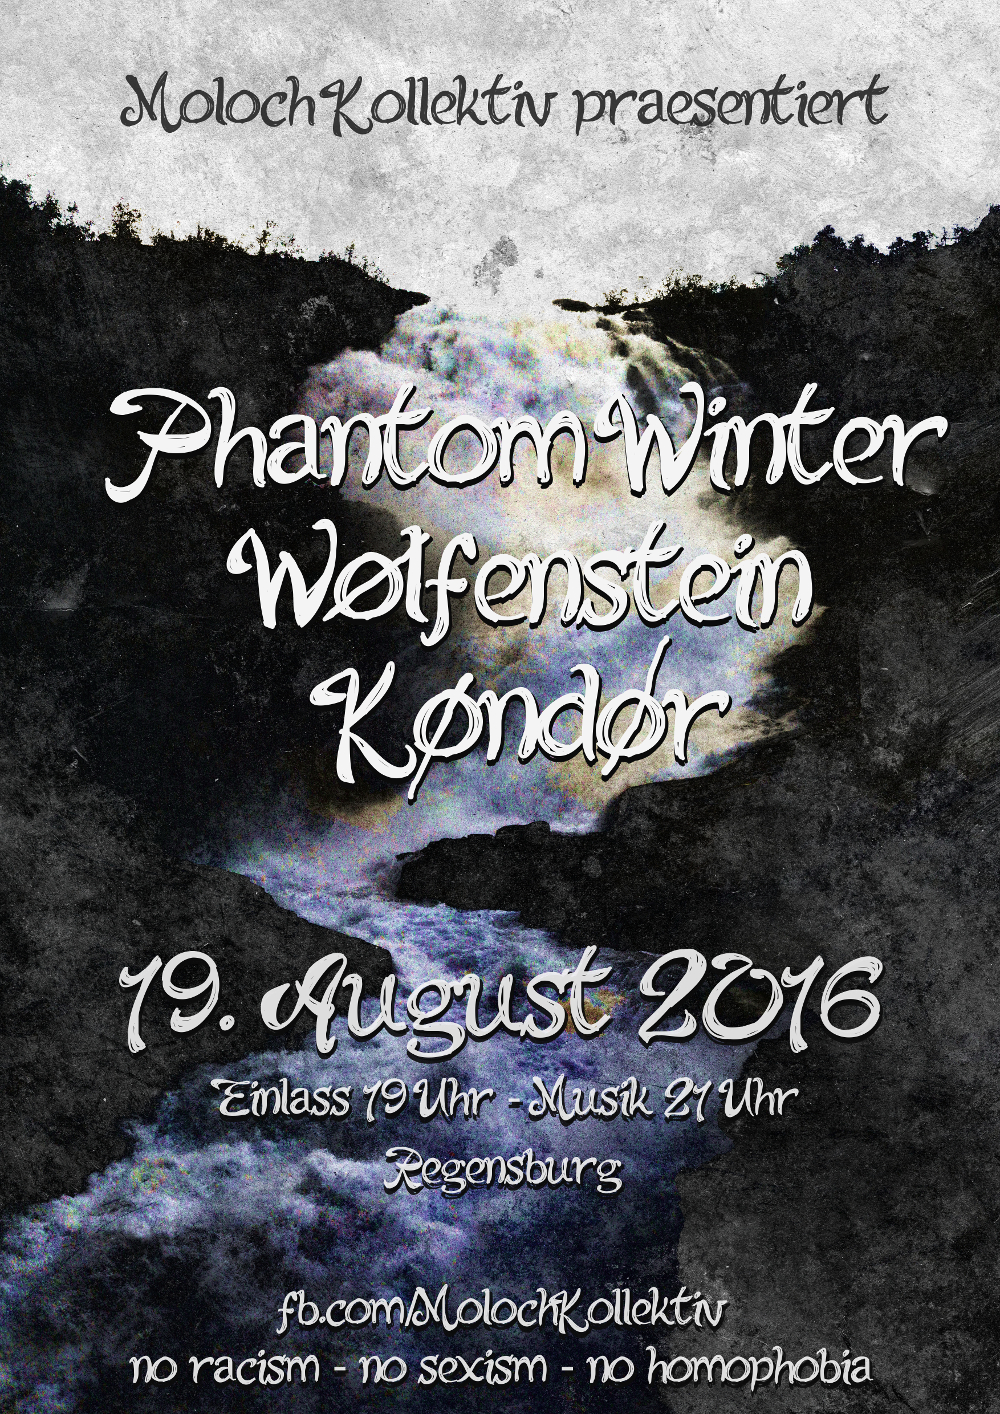 2016-08-19 Phantom Winter + WØLFENSTEIN + KØNDØR Flyer